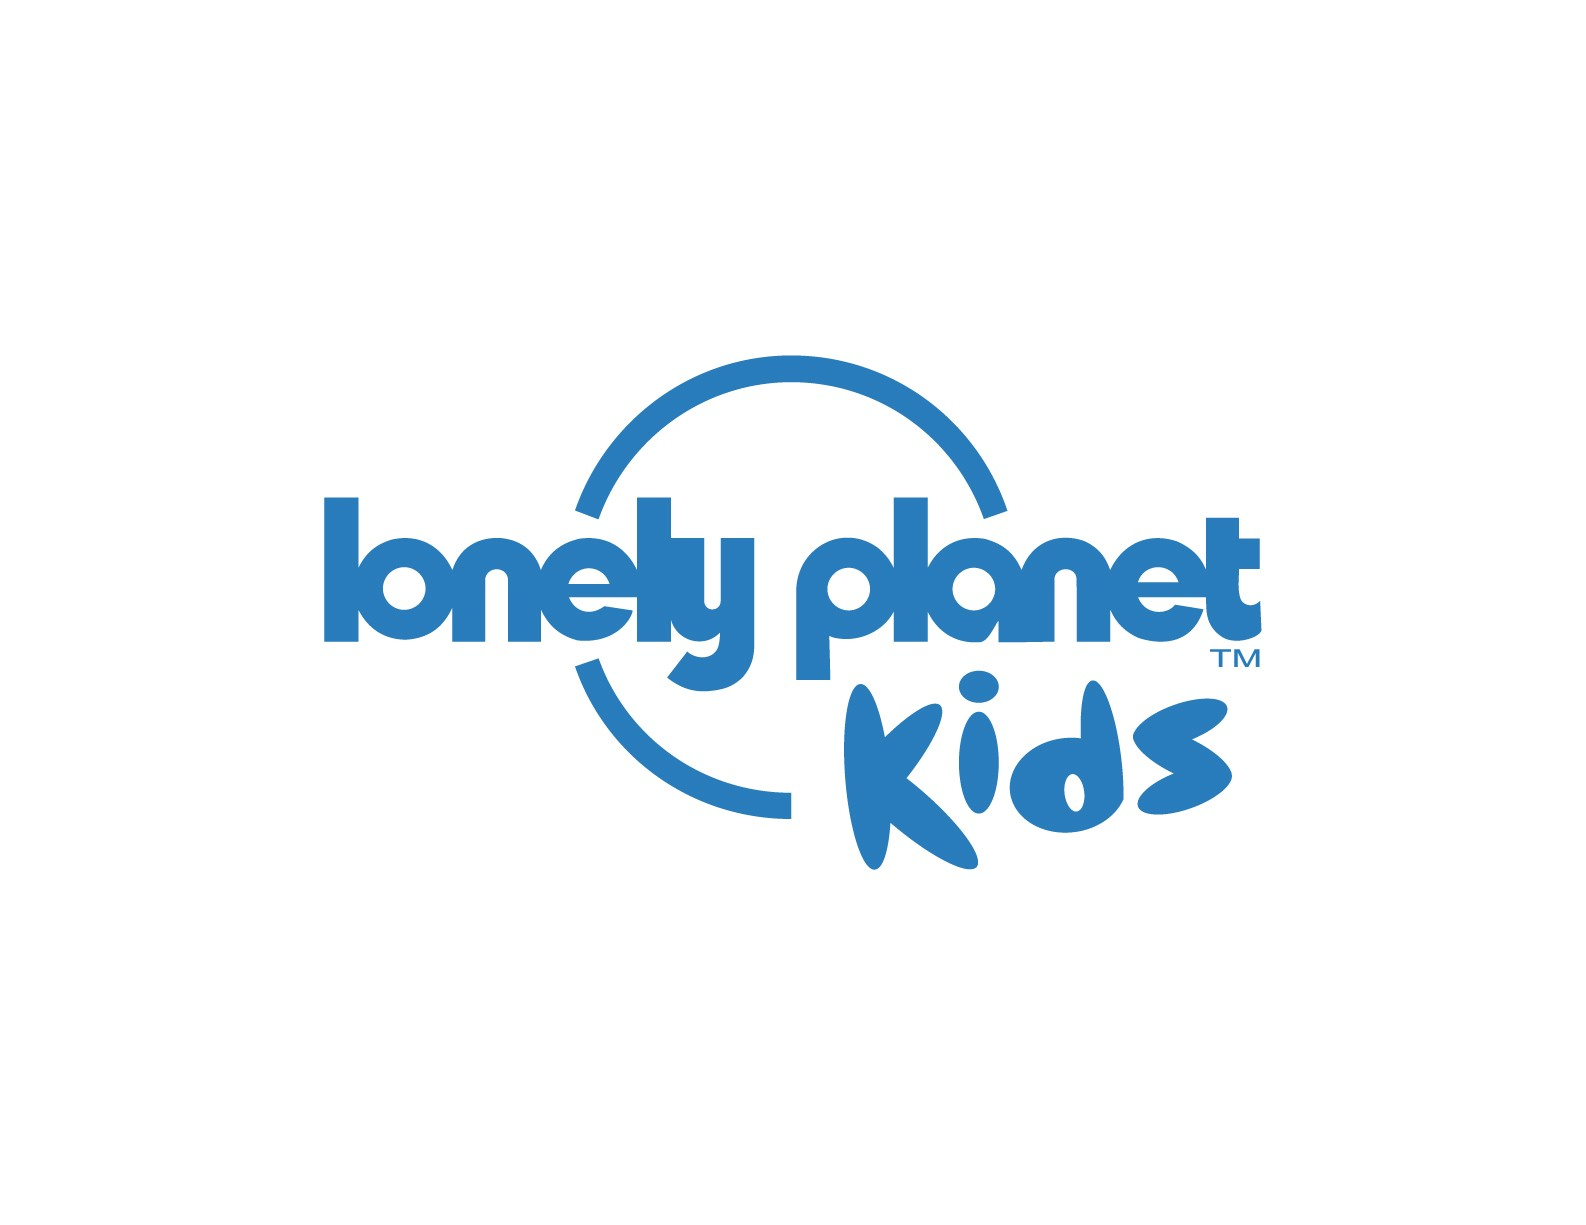 Lonely Planet Global Limited